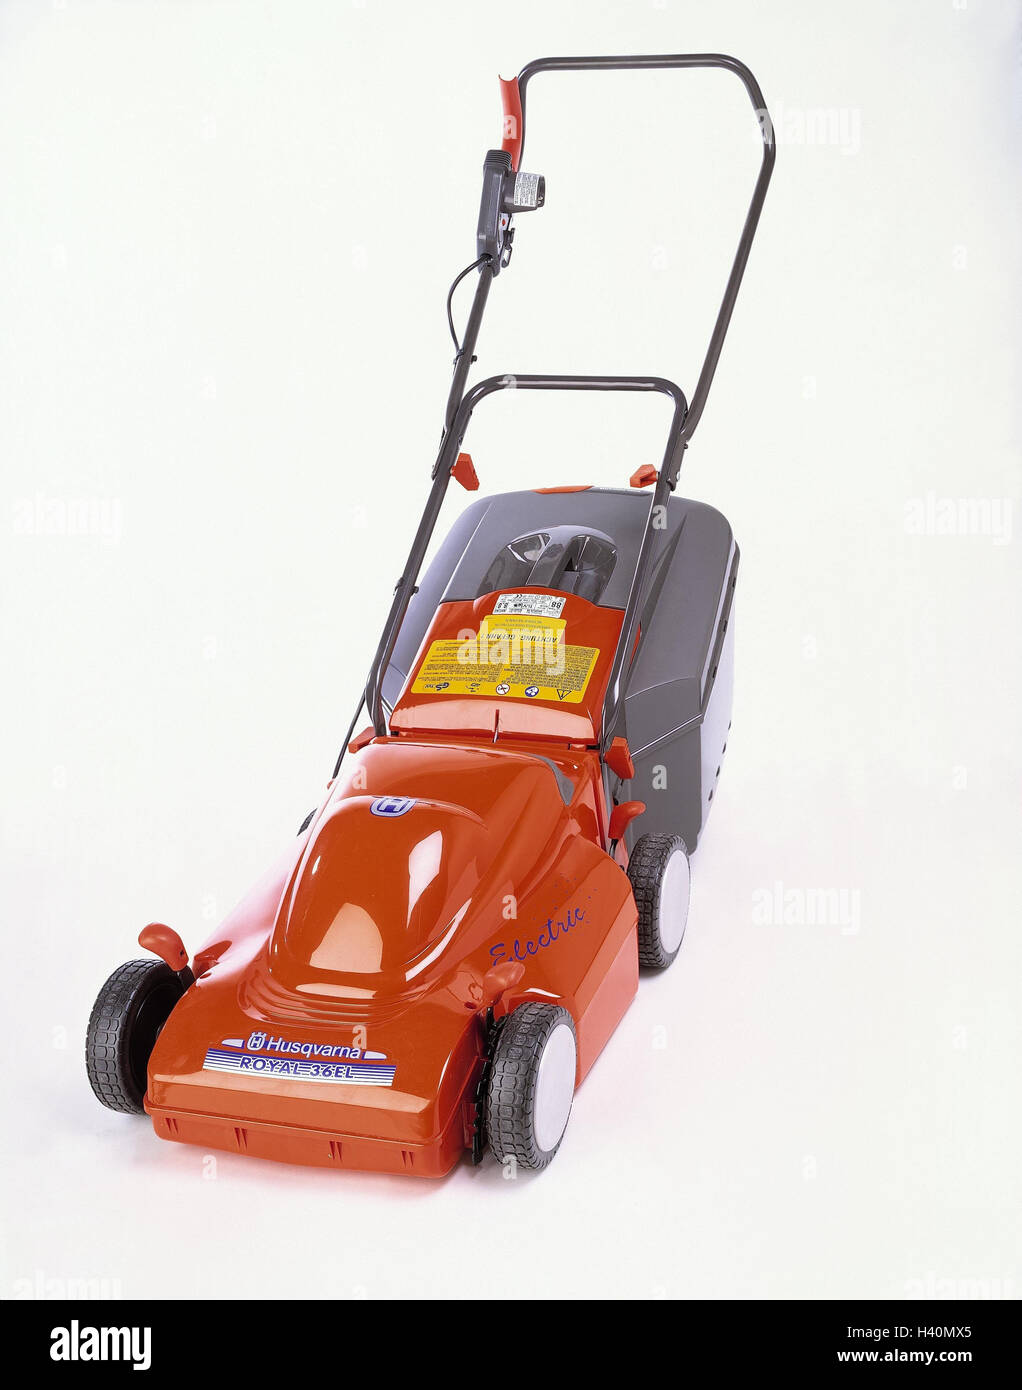 Lawn mower, electrically, producer, Husqvarna, model, royal 35 tablespoons, garden tools, gardening tool, electric - Stock Image